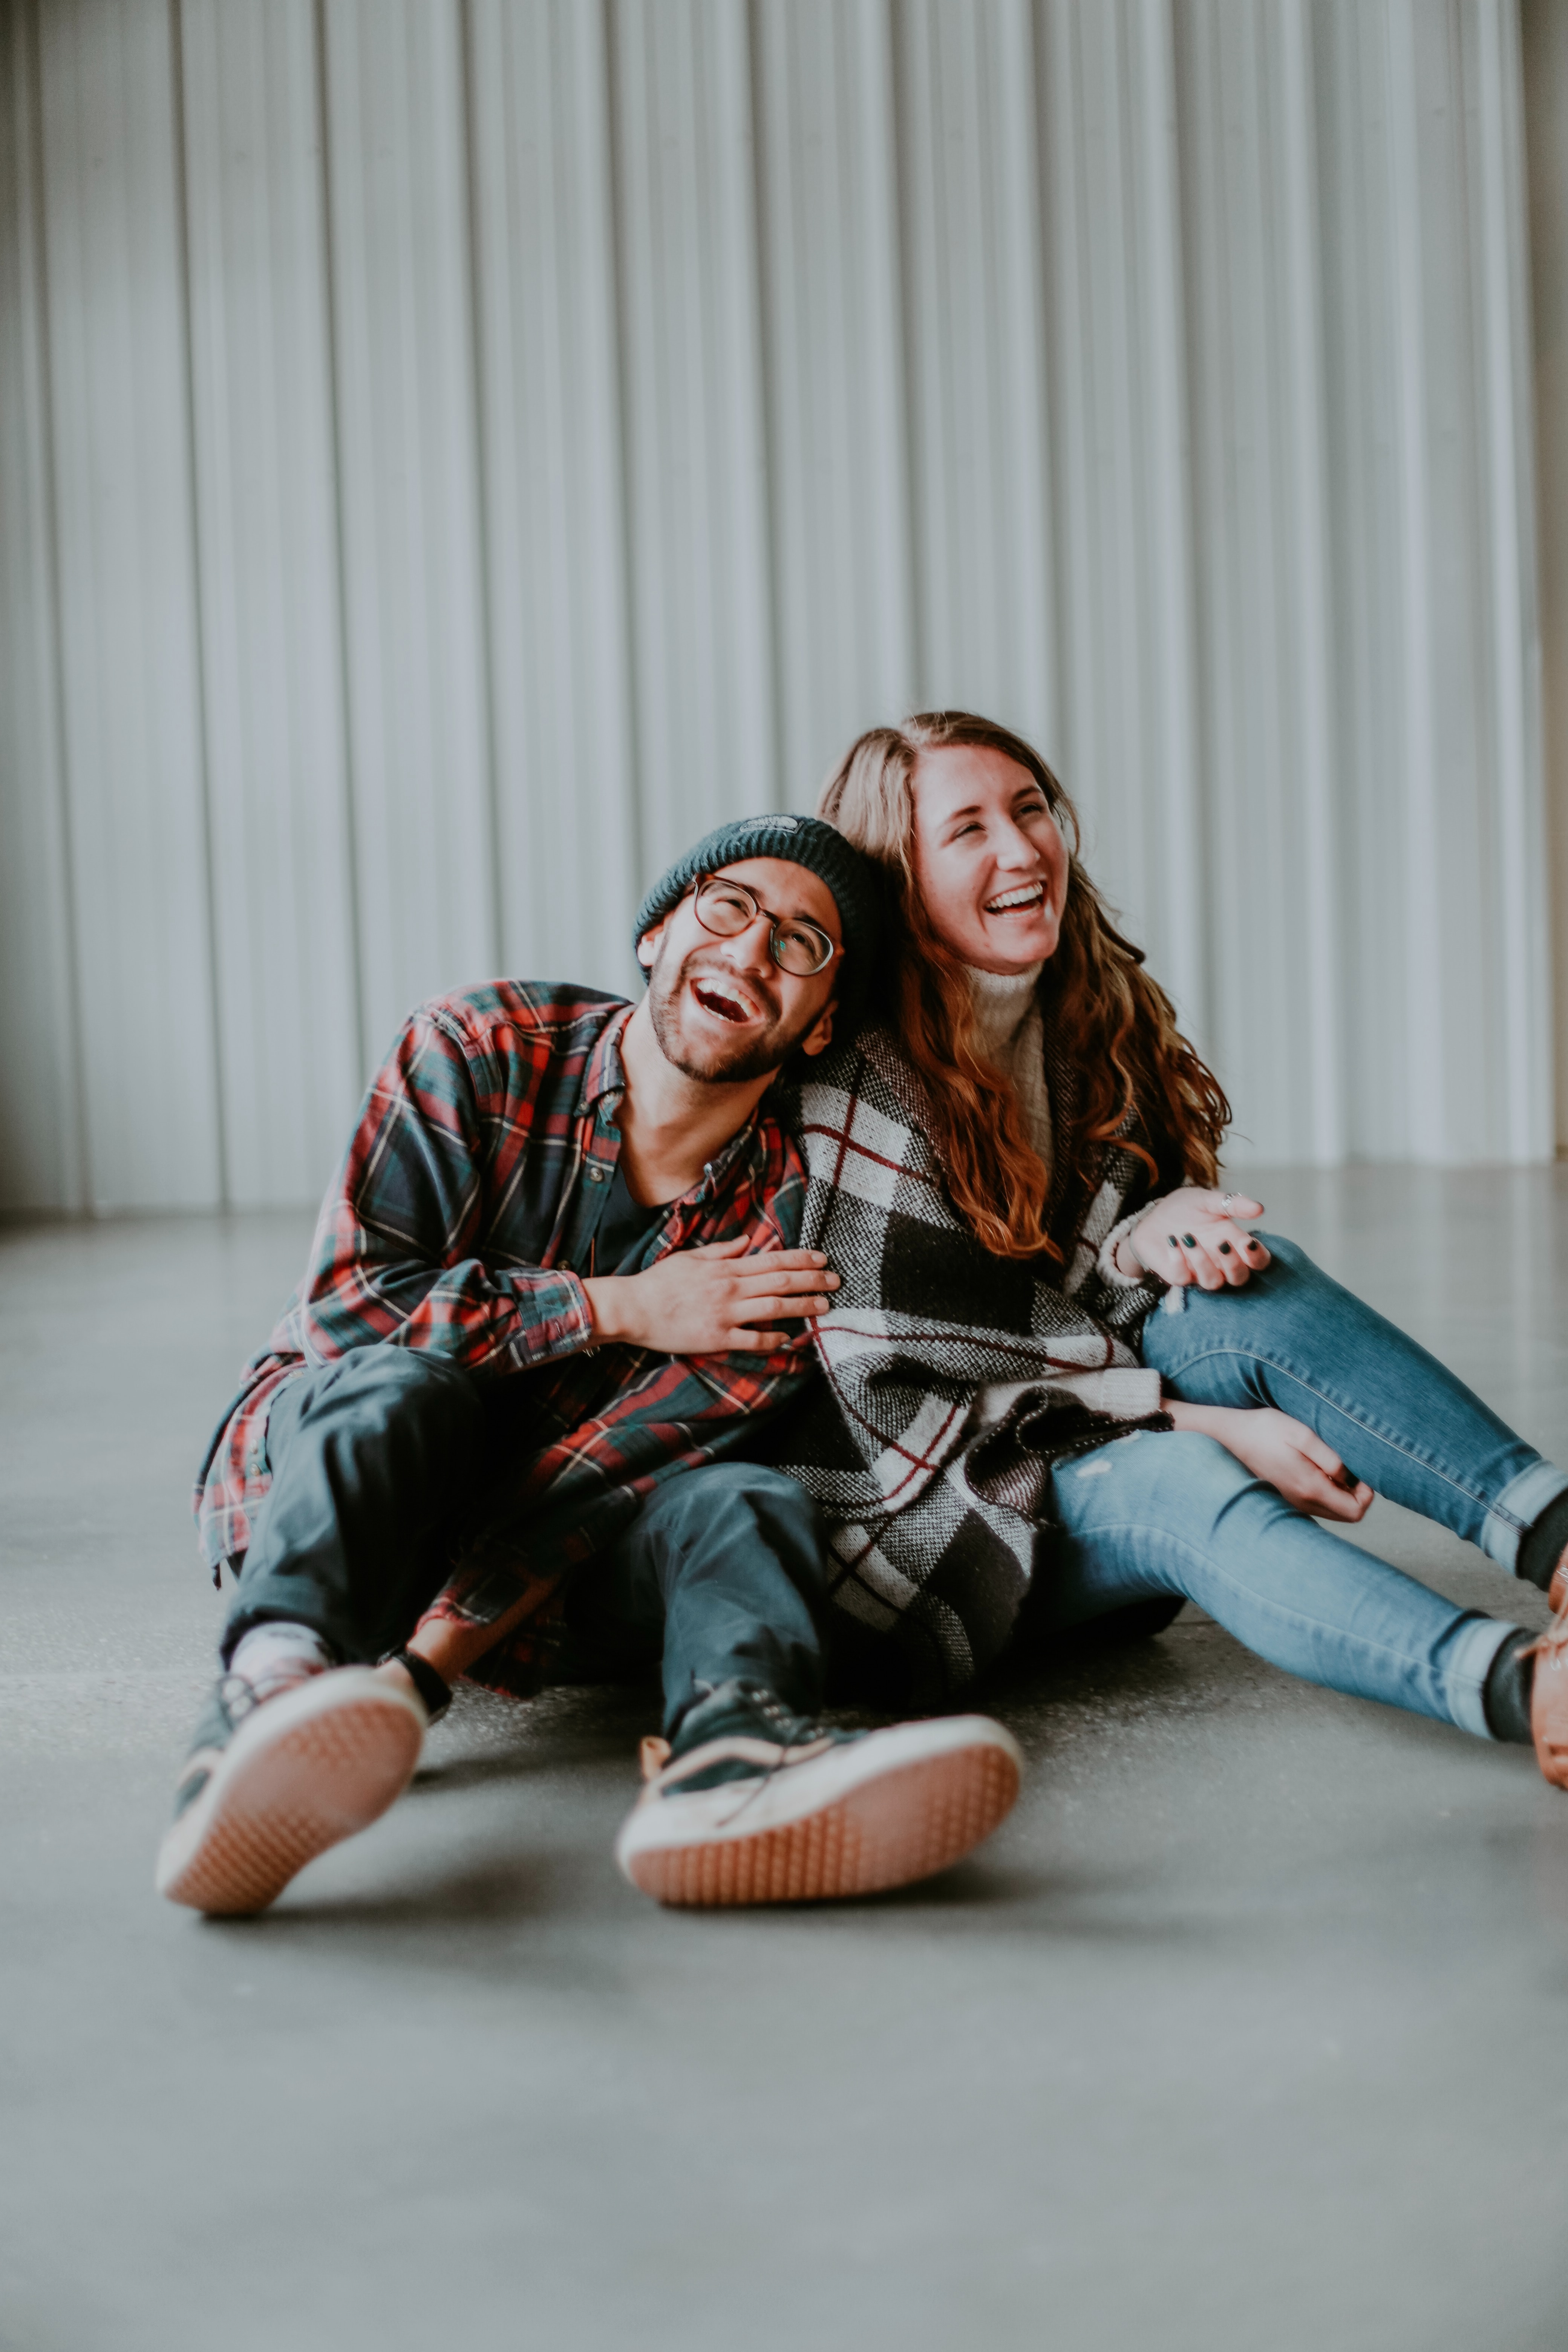 Laughter in all forms is a huge antidote to stress and burnout! Photo by Sarah Noltner on Unsplash.